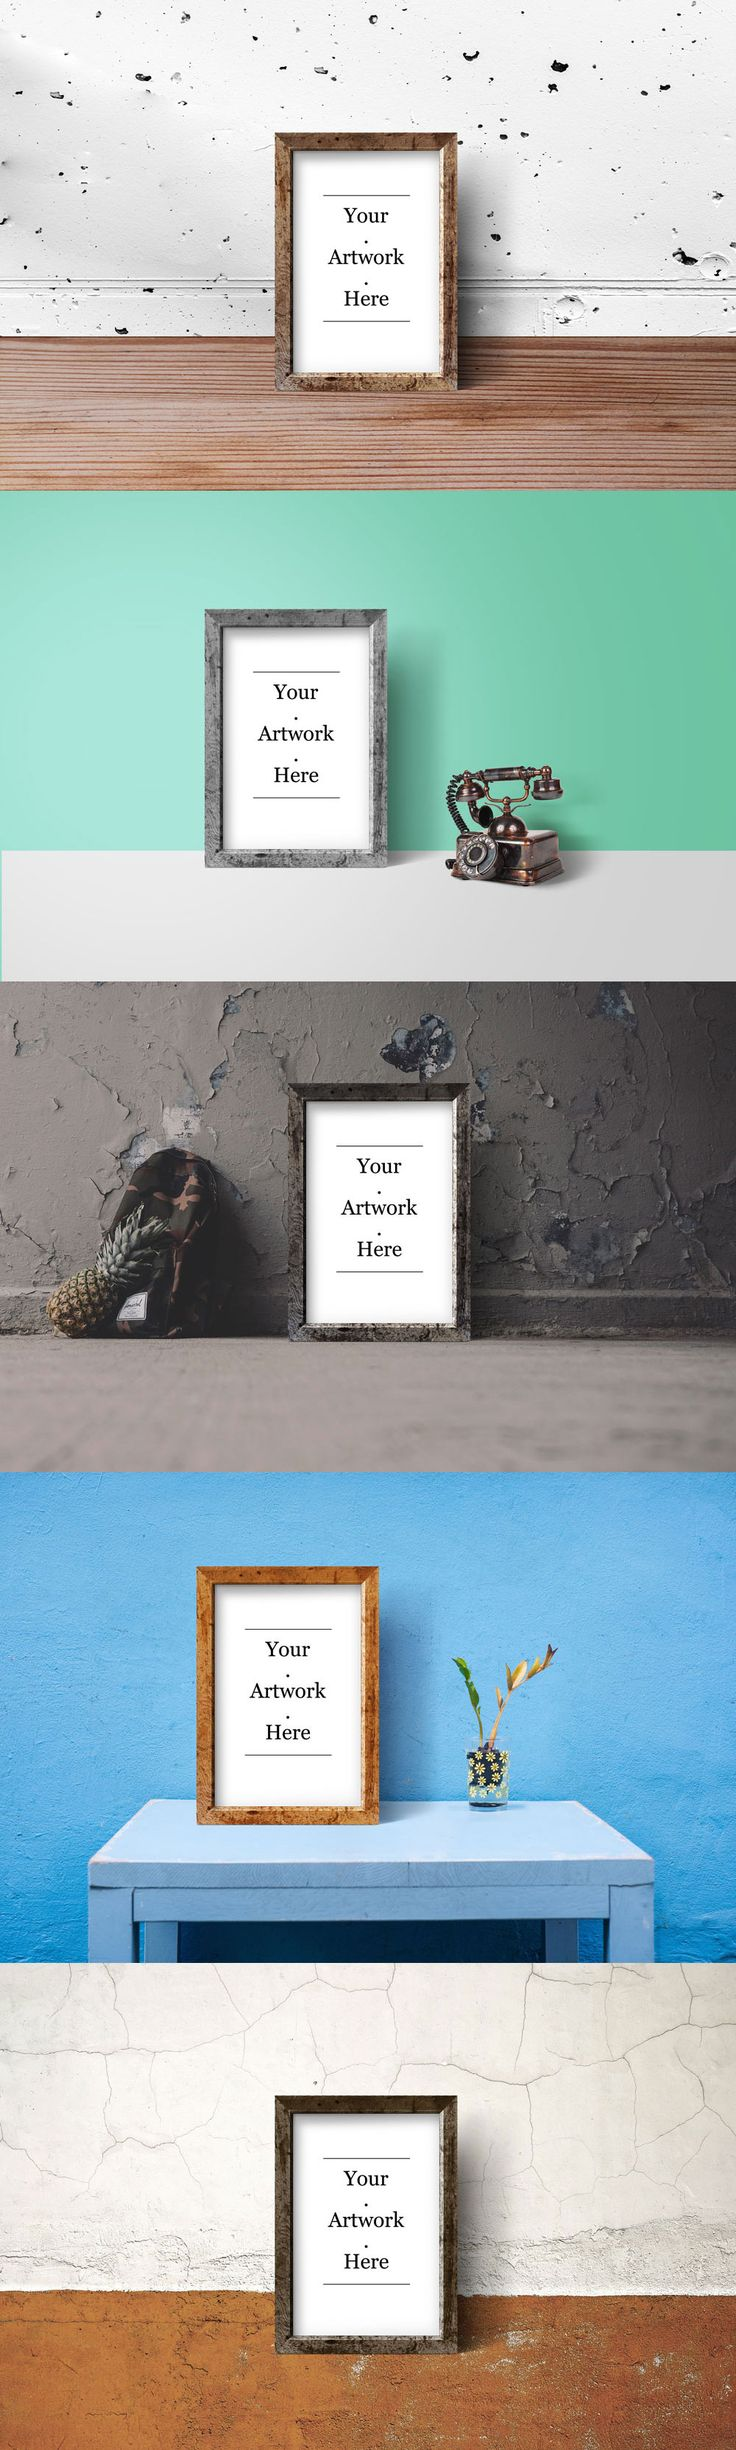 Friends! Enjoy a nice week with this set of 5 Rustic Wood Frame PSD free Mockup templates including 5 separate PSD files with 5 different settings to choose from. It comes with smart object, you can edit and add your own artwork or photos in no time. The colors and backgrounds are very easily changeable, so you can mix the templates to your liking. Enjoy!